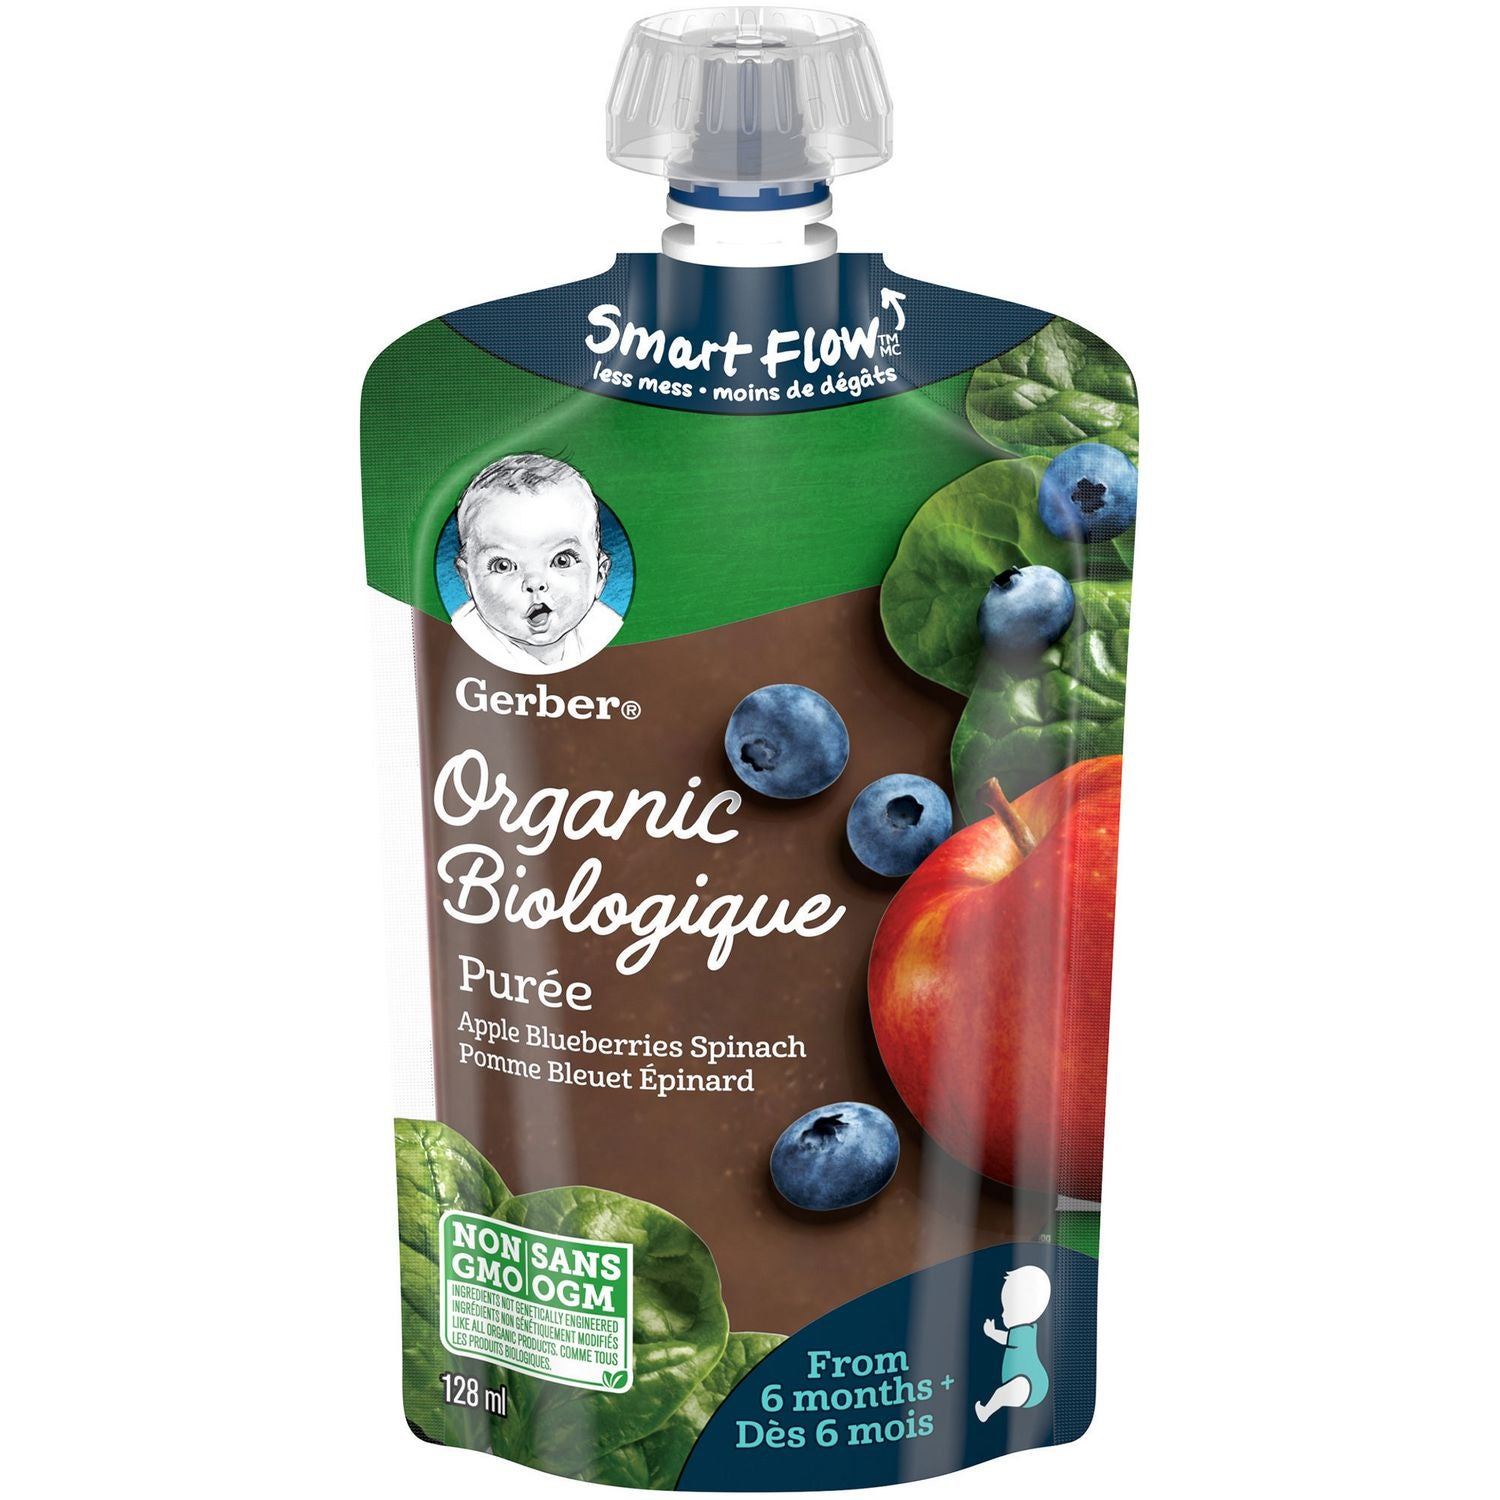 Nestle Gerber Organic Apples, Blueberries & Spinach Puree 128mL